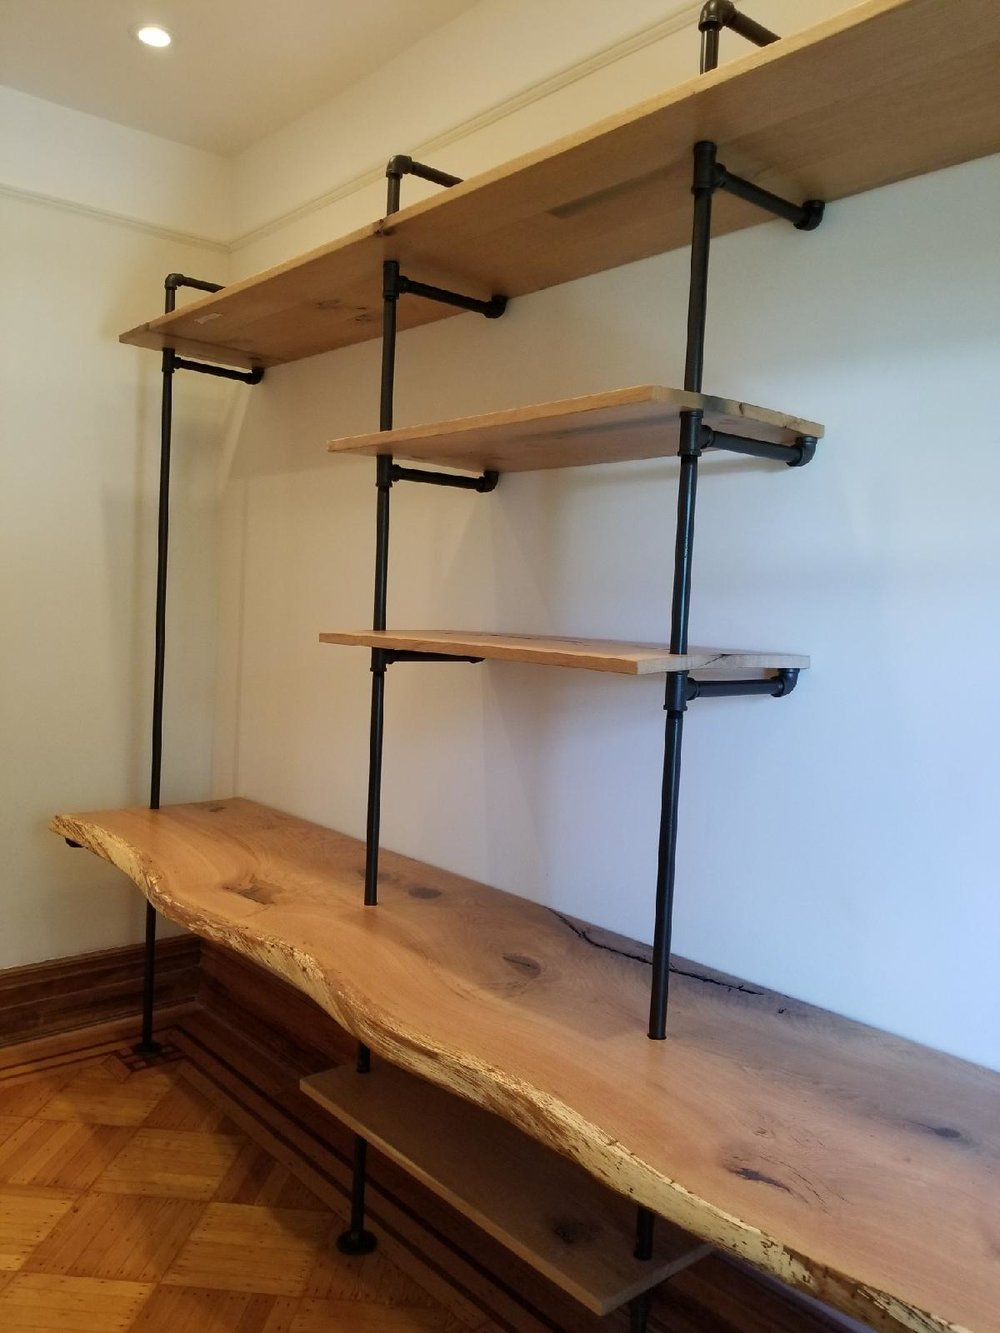 Live Edge White Oak Shelving Unit